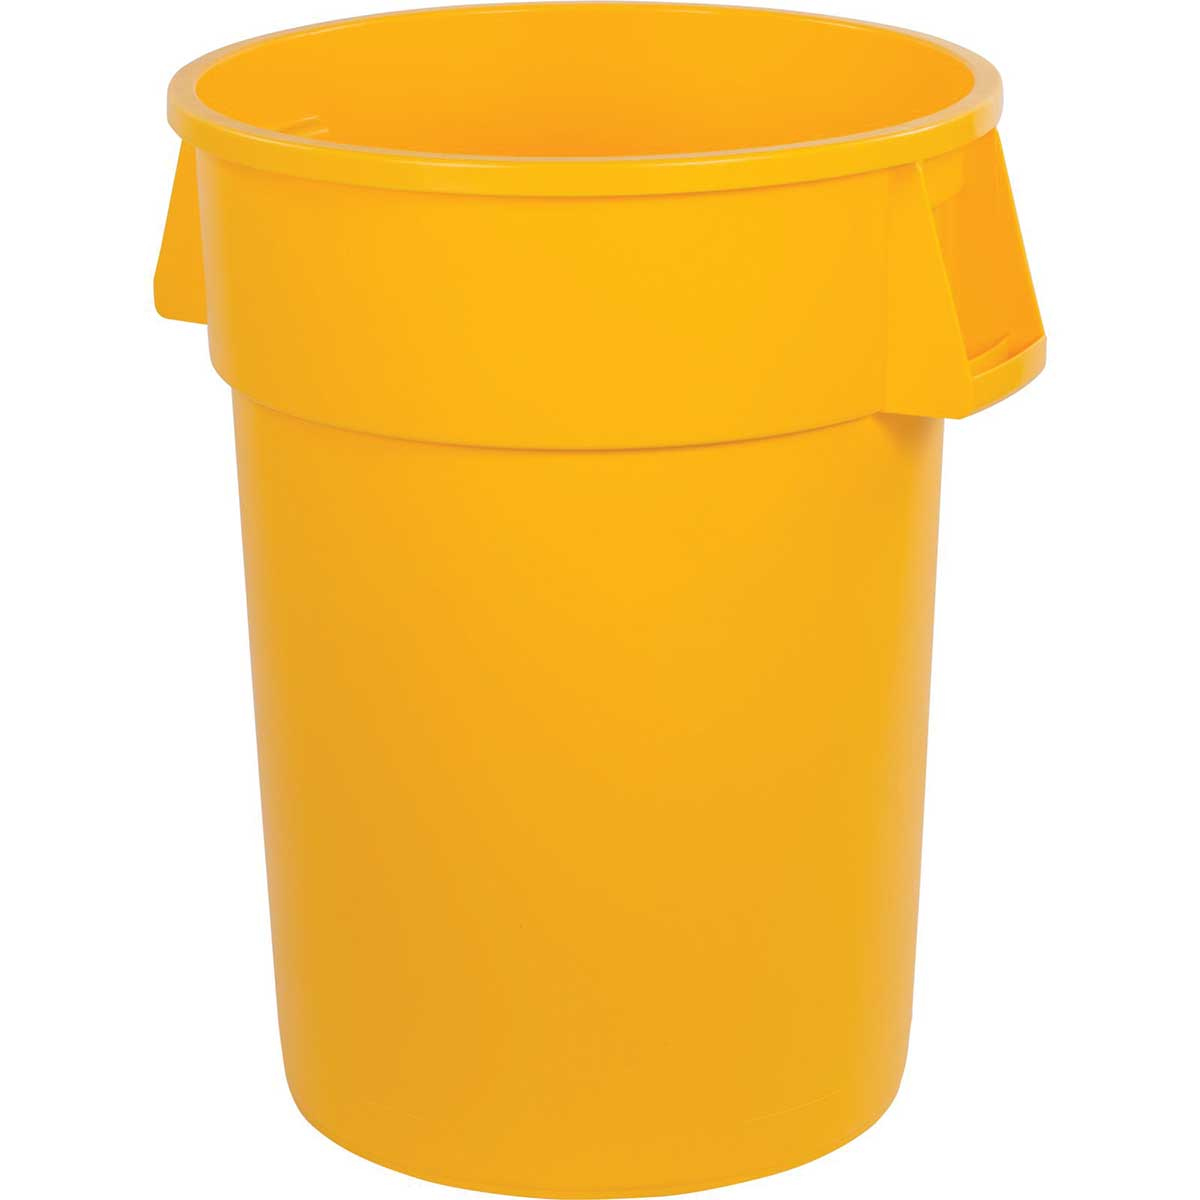 44-Gallon Bronco Round Trash Can, Pack of 3